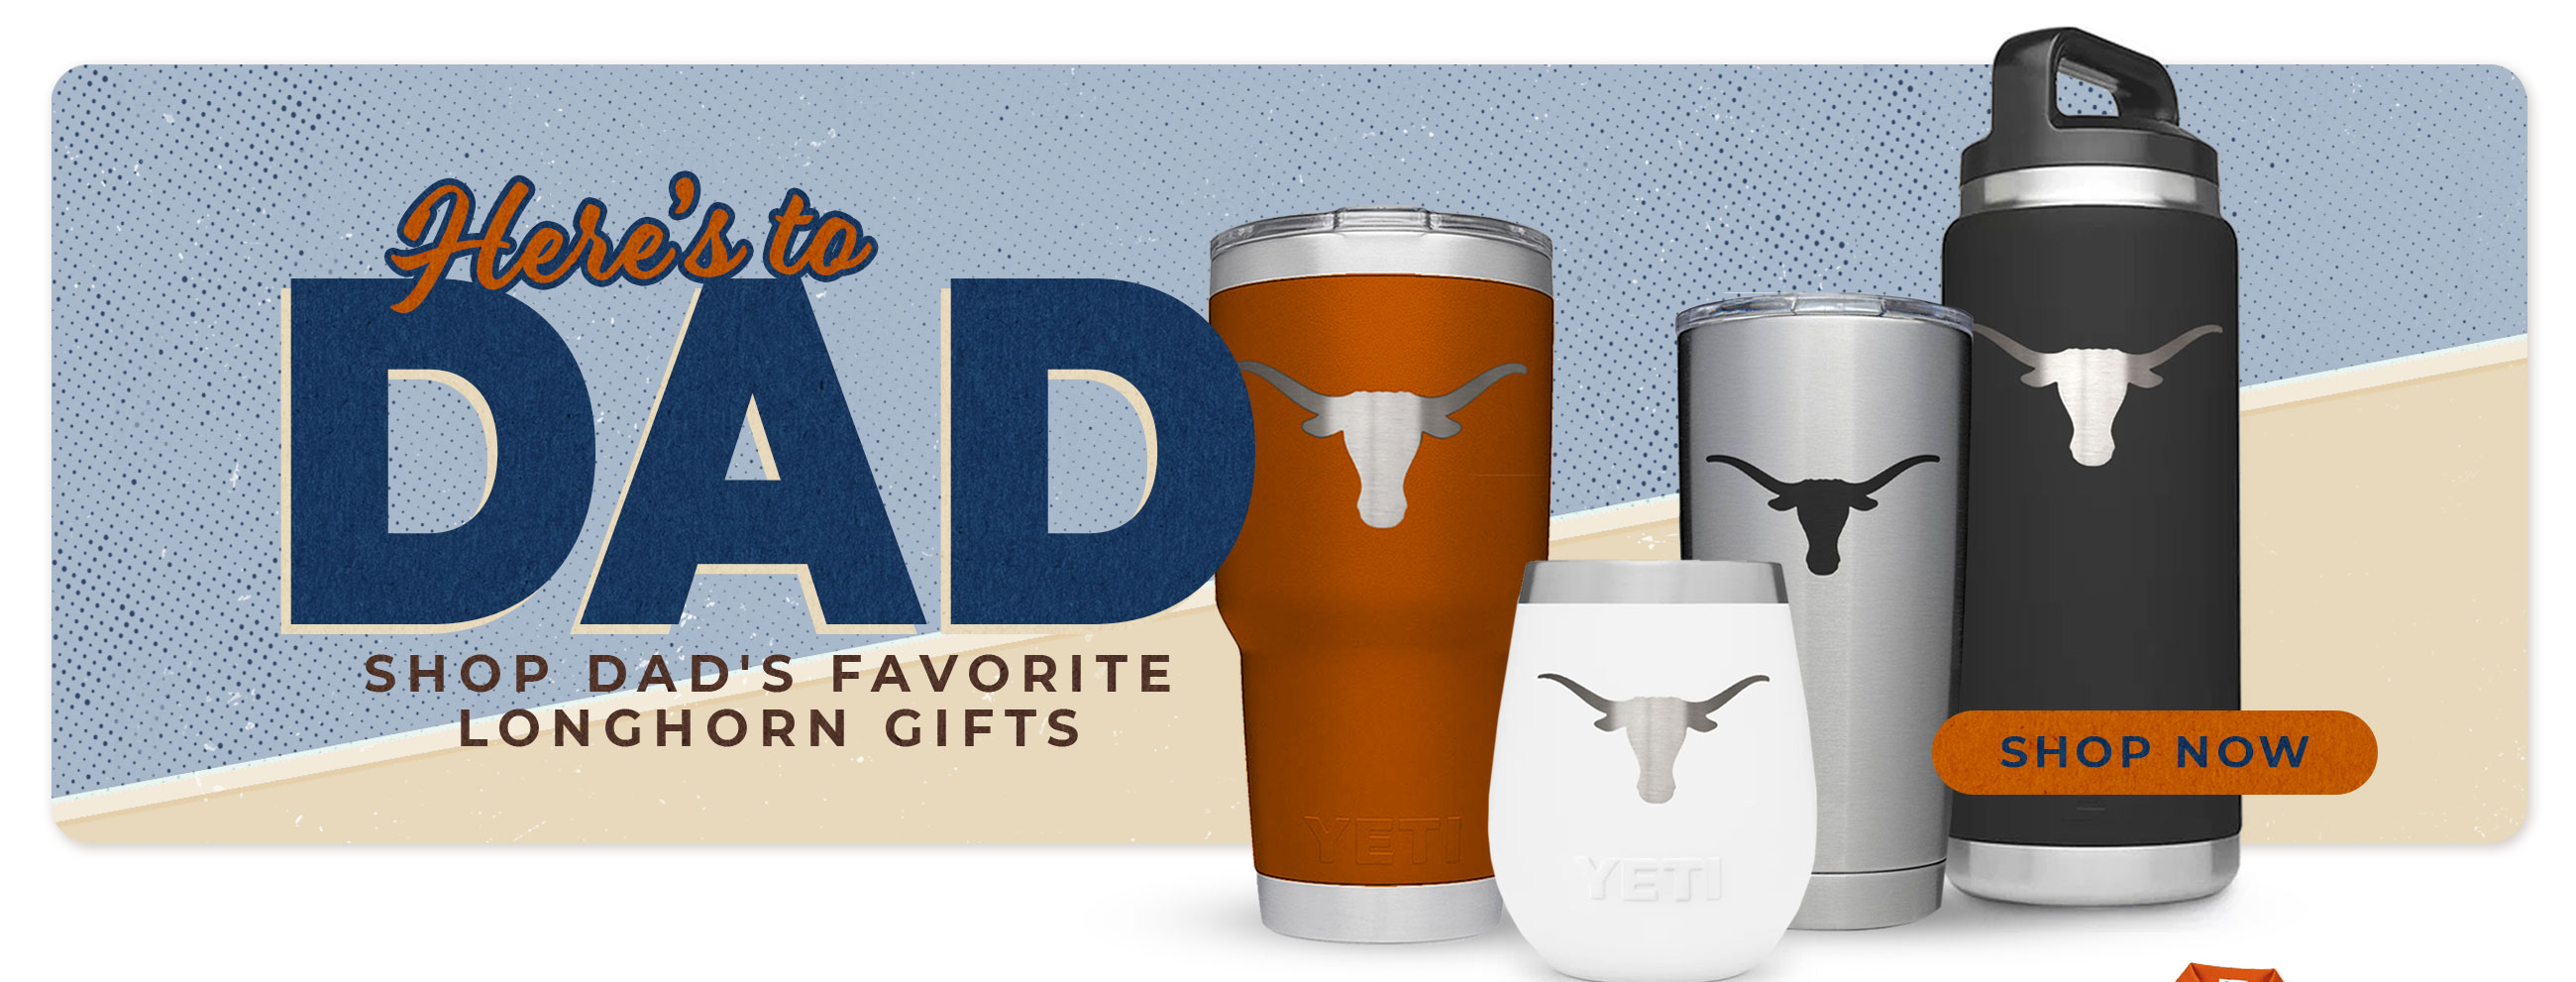 Here's to Dad! Shop Gifts for Longhorn Dads